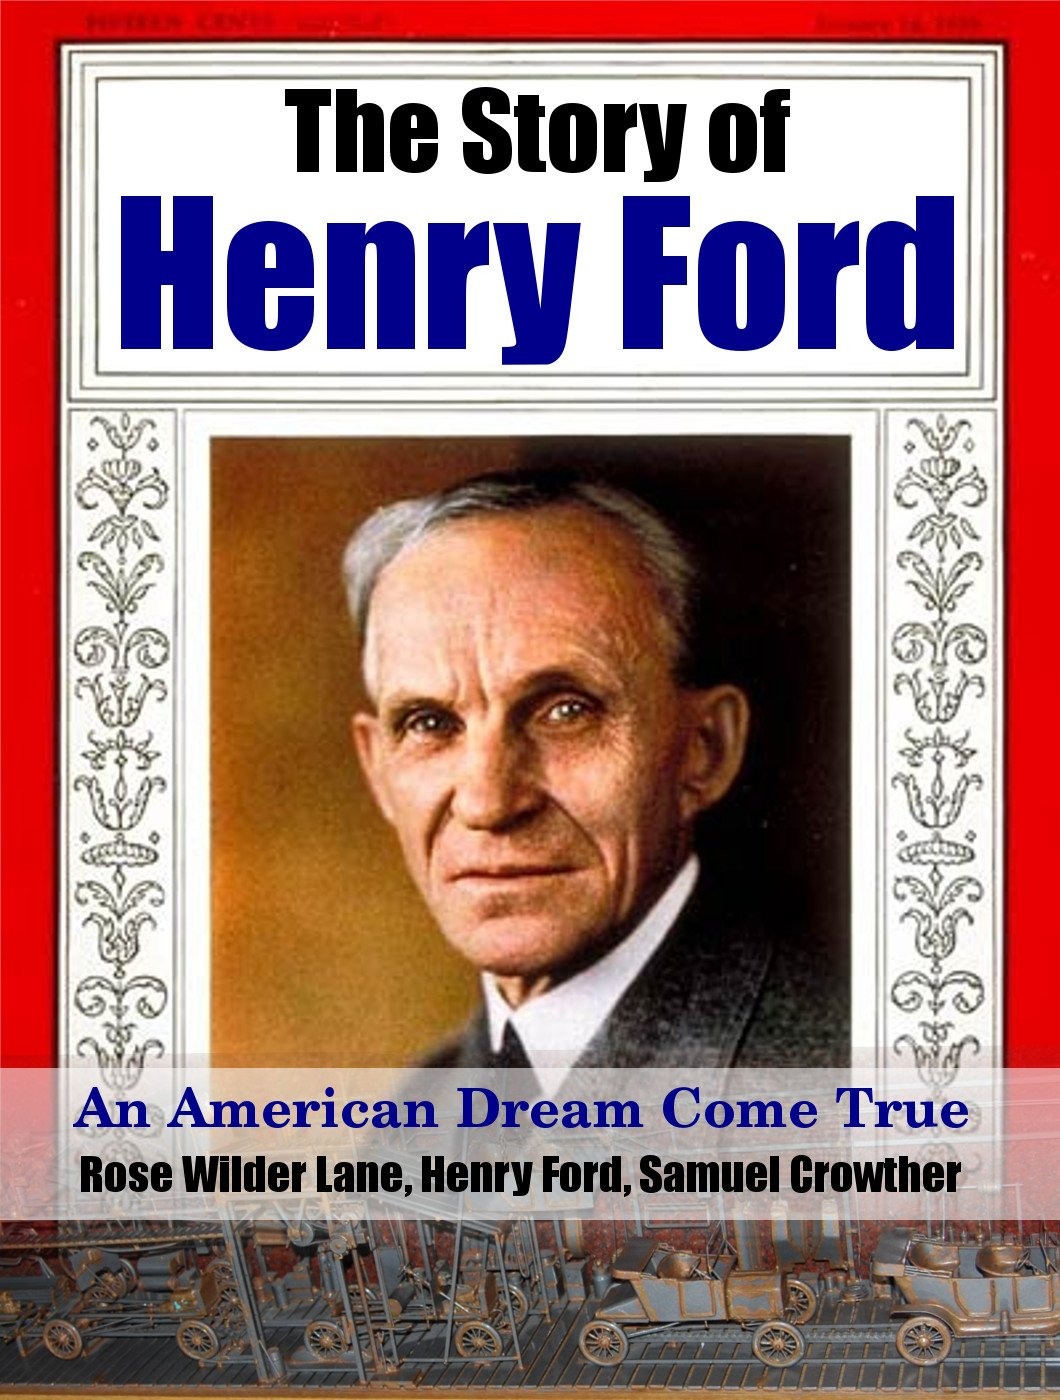 The Story of Henry Ford: An American Dream Come True (Adding Clear Value Book 10)